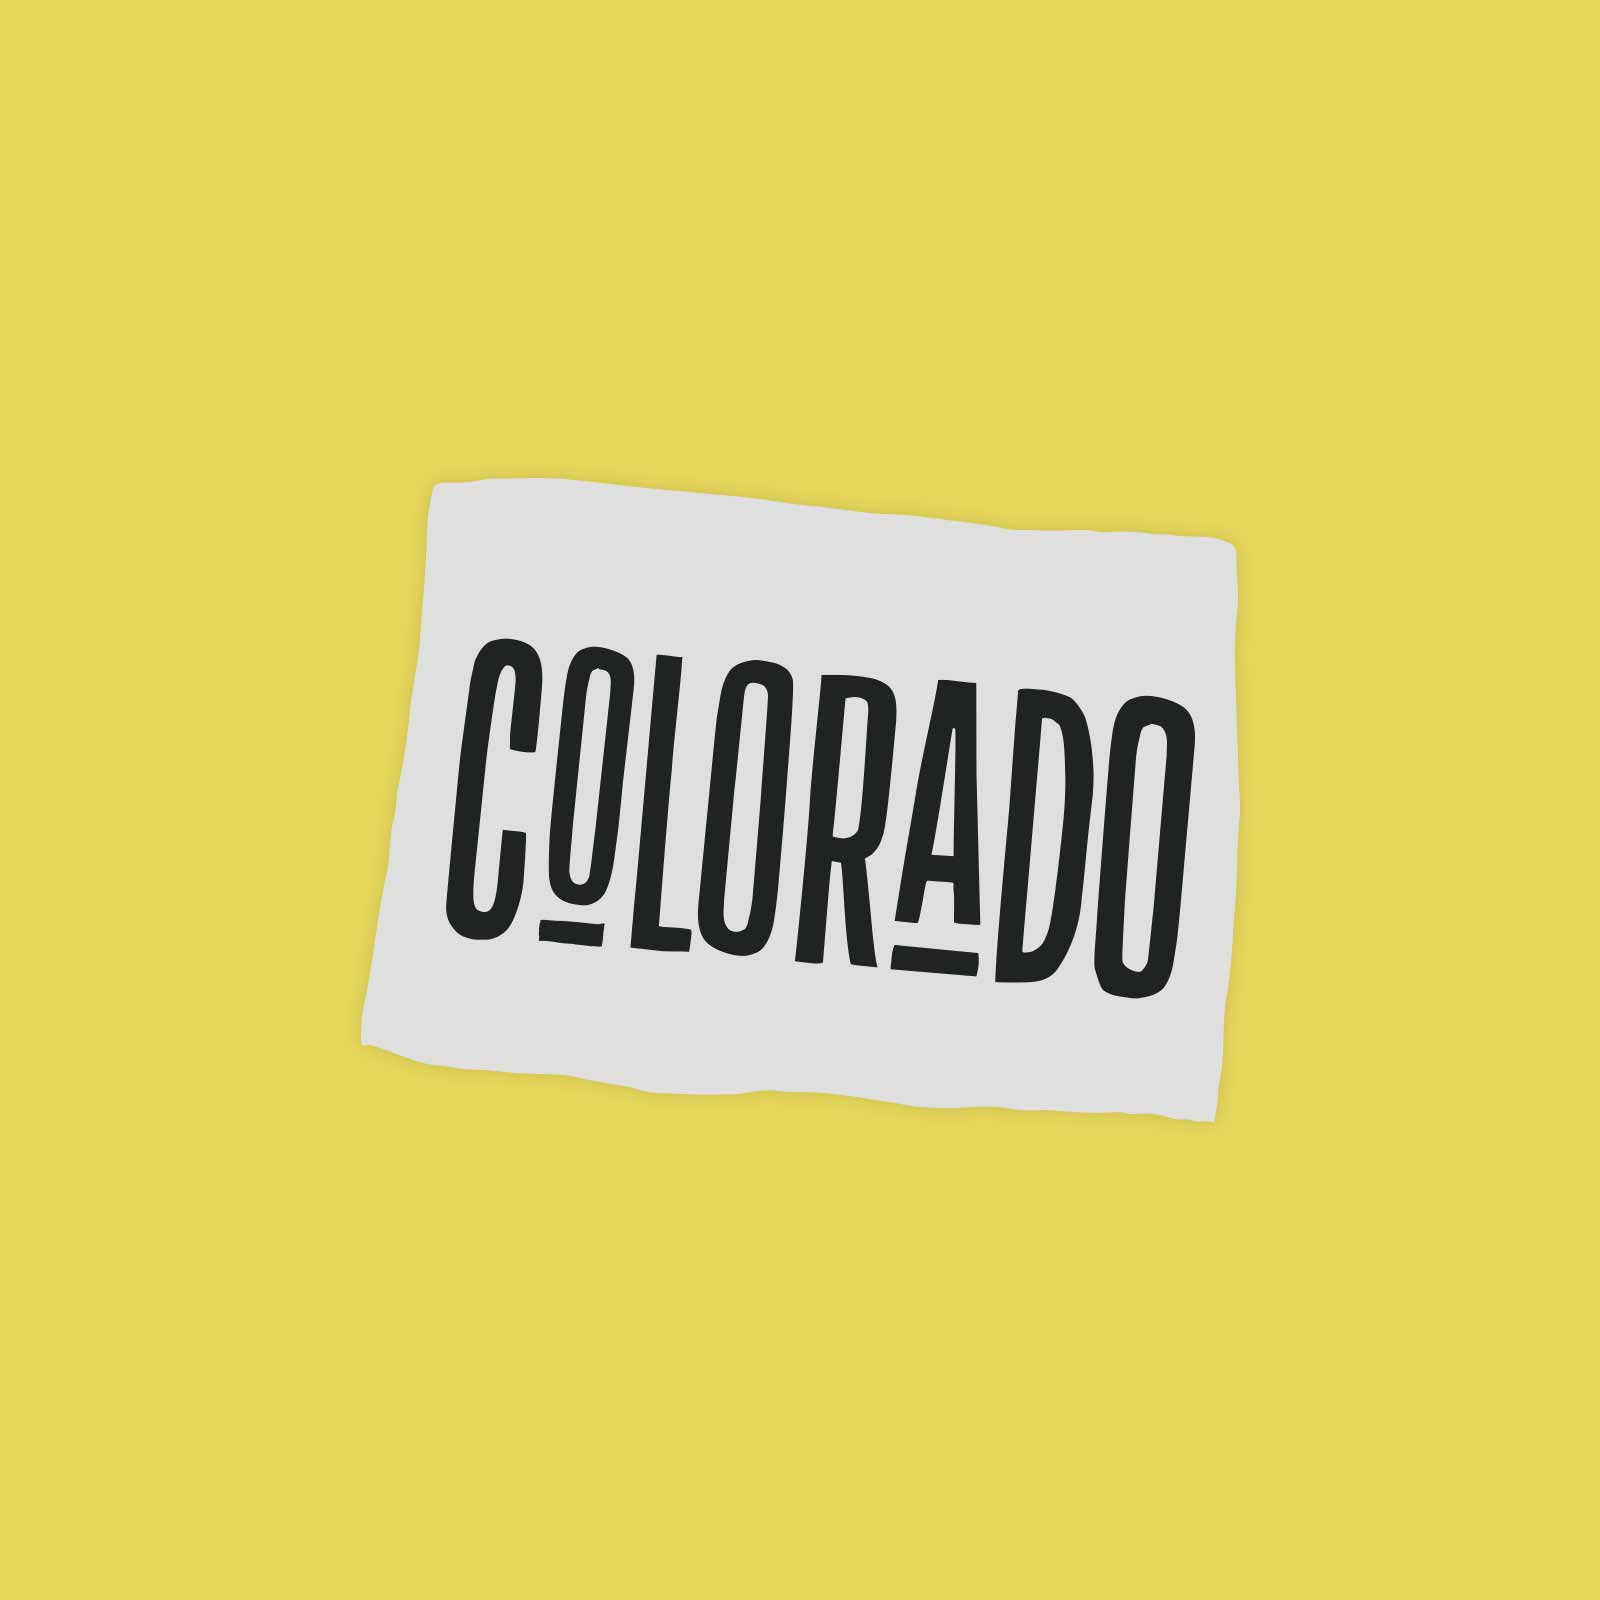 How to start a business in Colorado